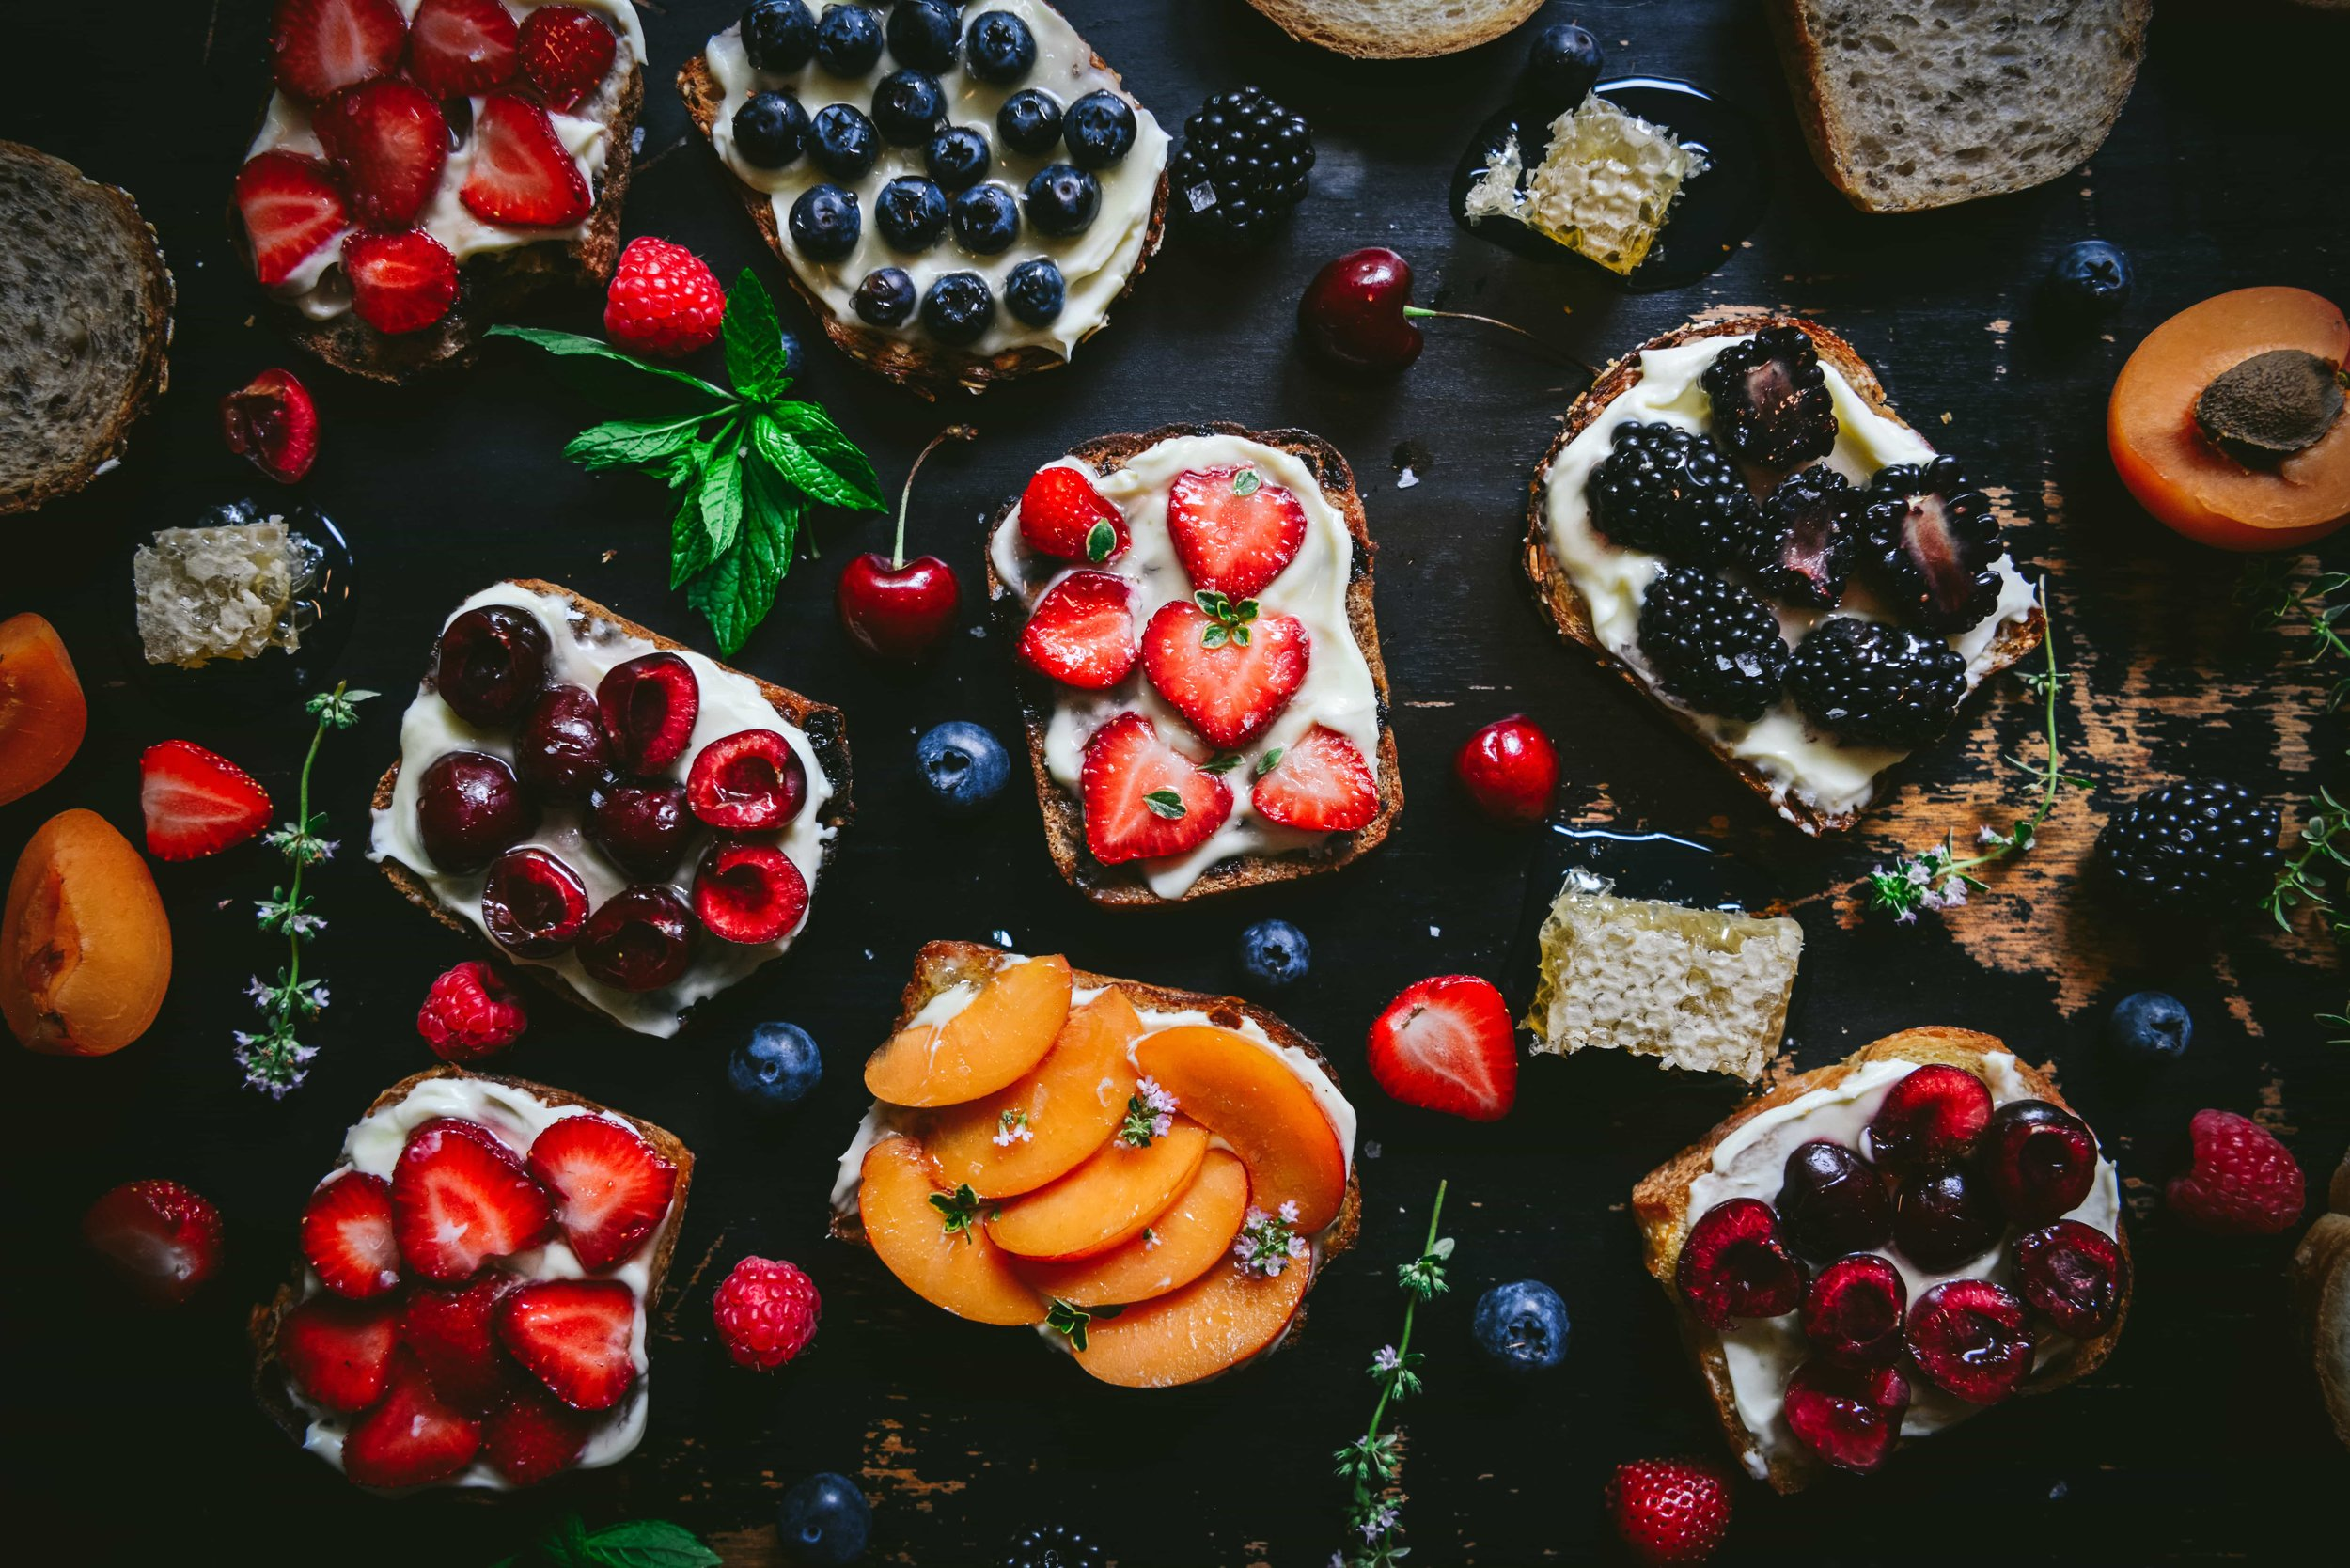 Summer Fruit Mascarpone Toasts - When the strawberries are ripe, it is a sure sign that summer has arrived in New England. These juicy, heart-shaped, scarlet garden berries are genetically related to the garden rose and are best when fresh from the field. Blackberries and blueberries seem to be the best of year-round available fruit and are easy to find organically grown. California grows delightful late spring apricots and the first North-American cherries that hit the market just as strawberries are at their summer solstice best. For a particularly delightful Sunday brunch, toast slices of rye, brioche, country, and raisin pecan bread from a favorite bakery, slather with mascarpone cheese, drizzle with local honey, sprinkle with sea salt flakes, and dot with tiny mint sprigs or lemon thyme. Rustically elegant, this fruit and bread cornucopia pairs perfectly with bubbly. There must be something to celebrate….go ahead and pop the cork!